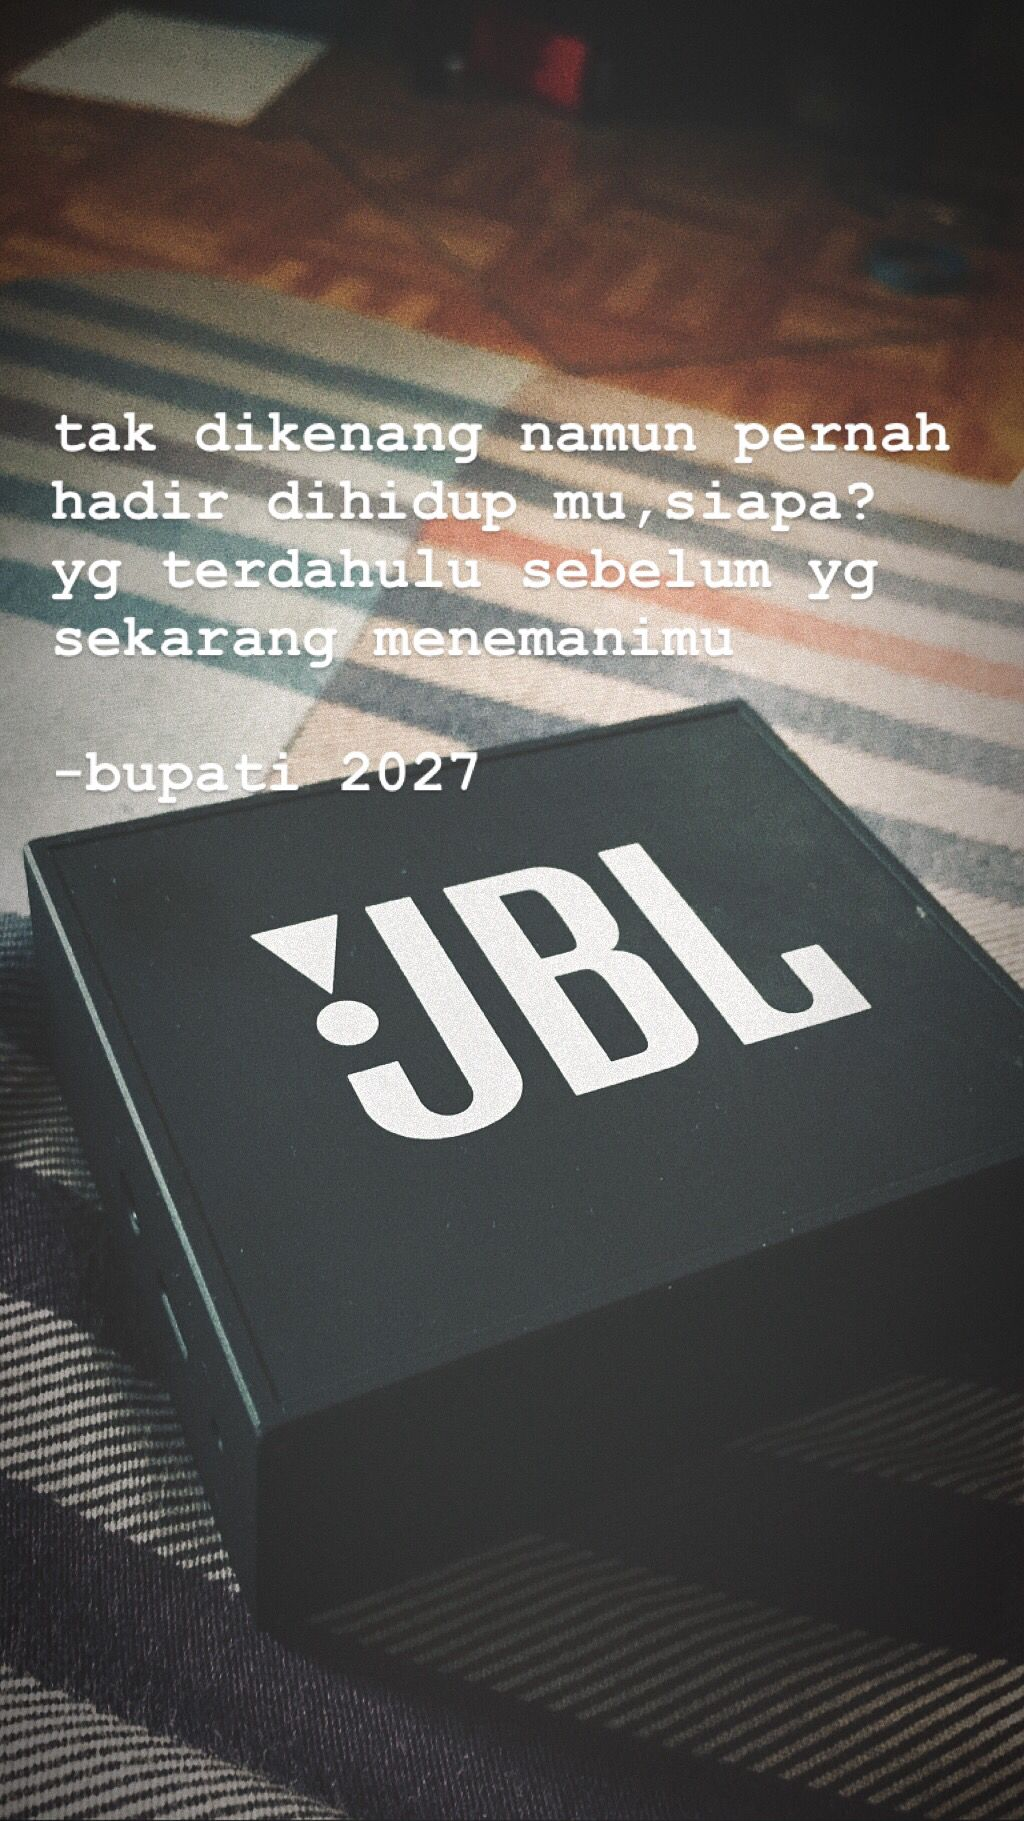 bupati 2027 quotes about family quotes antologi rasa a